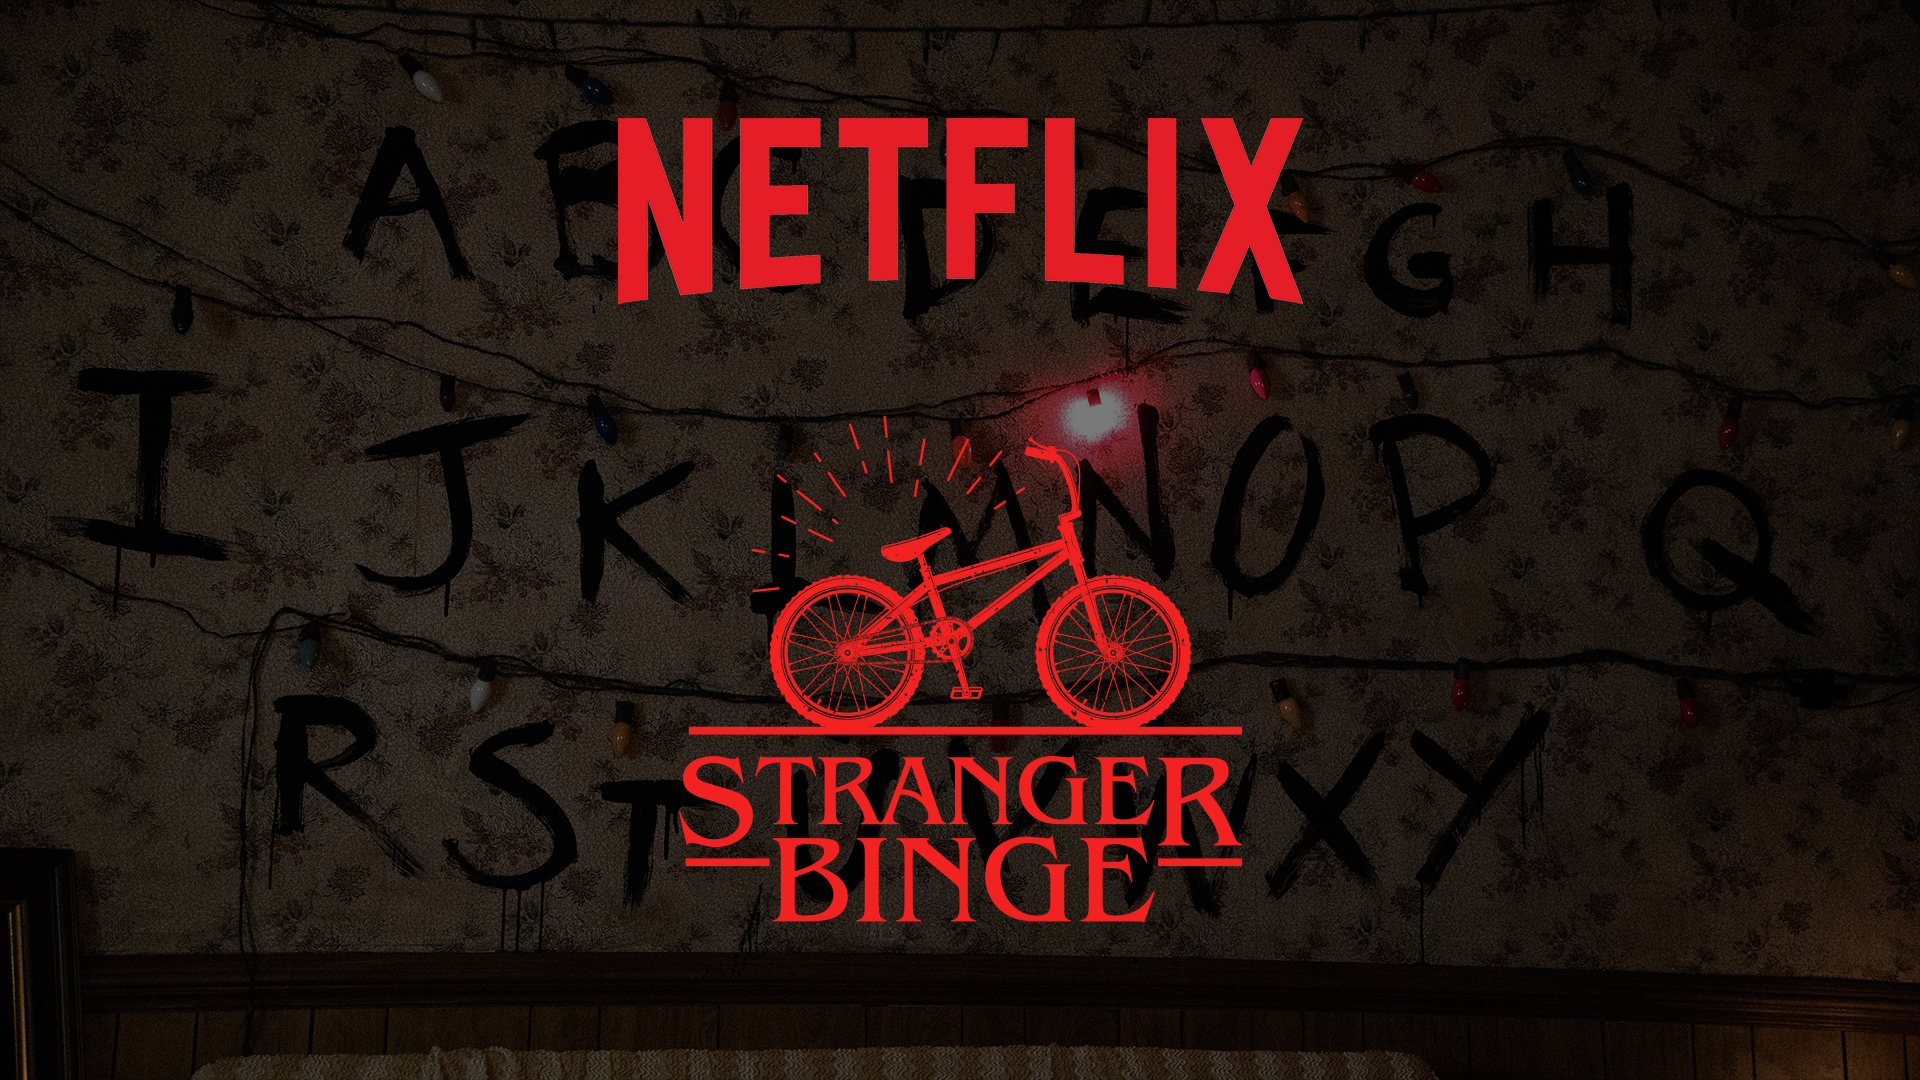 On the occasion of the debut of the second season of Stranger Things, Netflix Italia organized a special event for all the fans of the acclaimed TV series: a nine-episode ride to watch the adventures of Hawkins's boys.